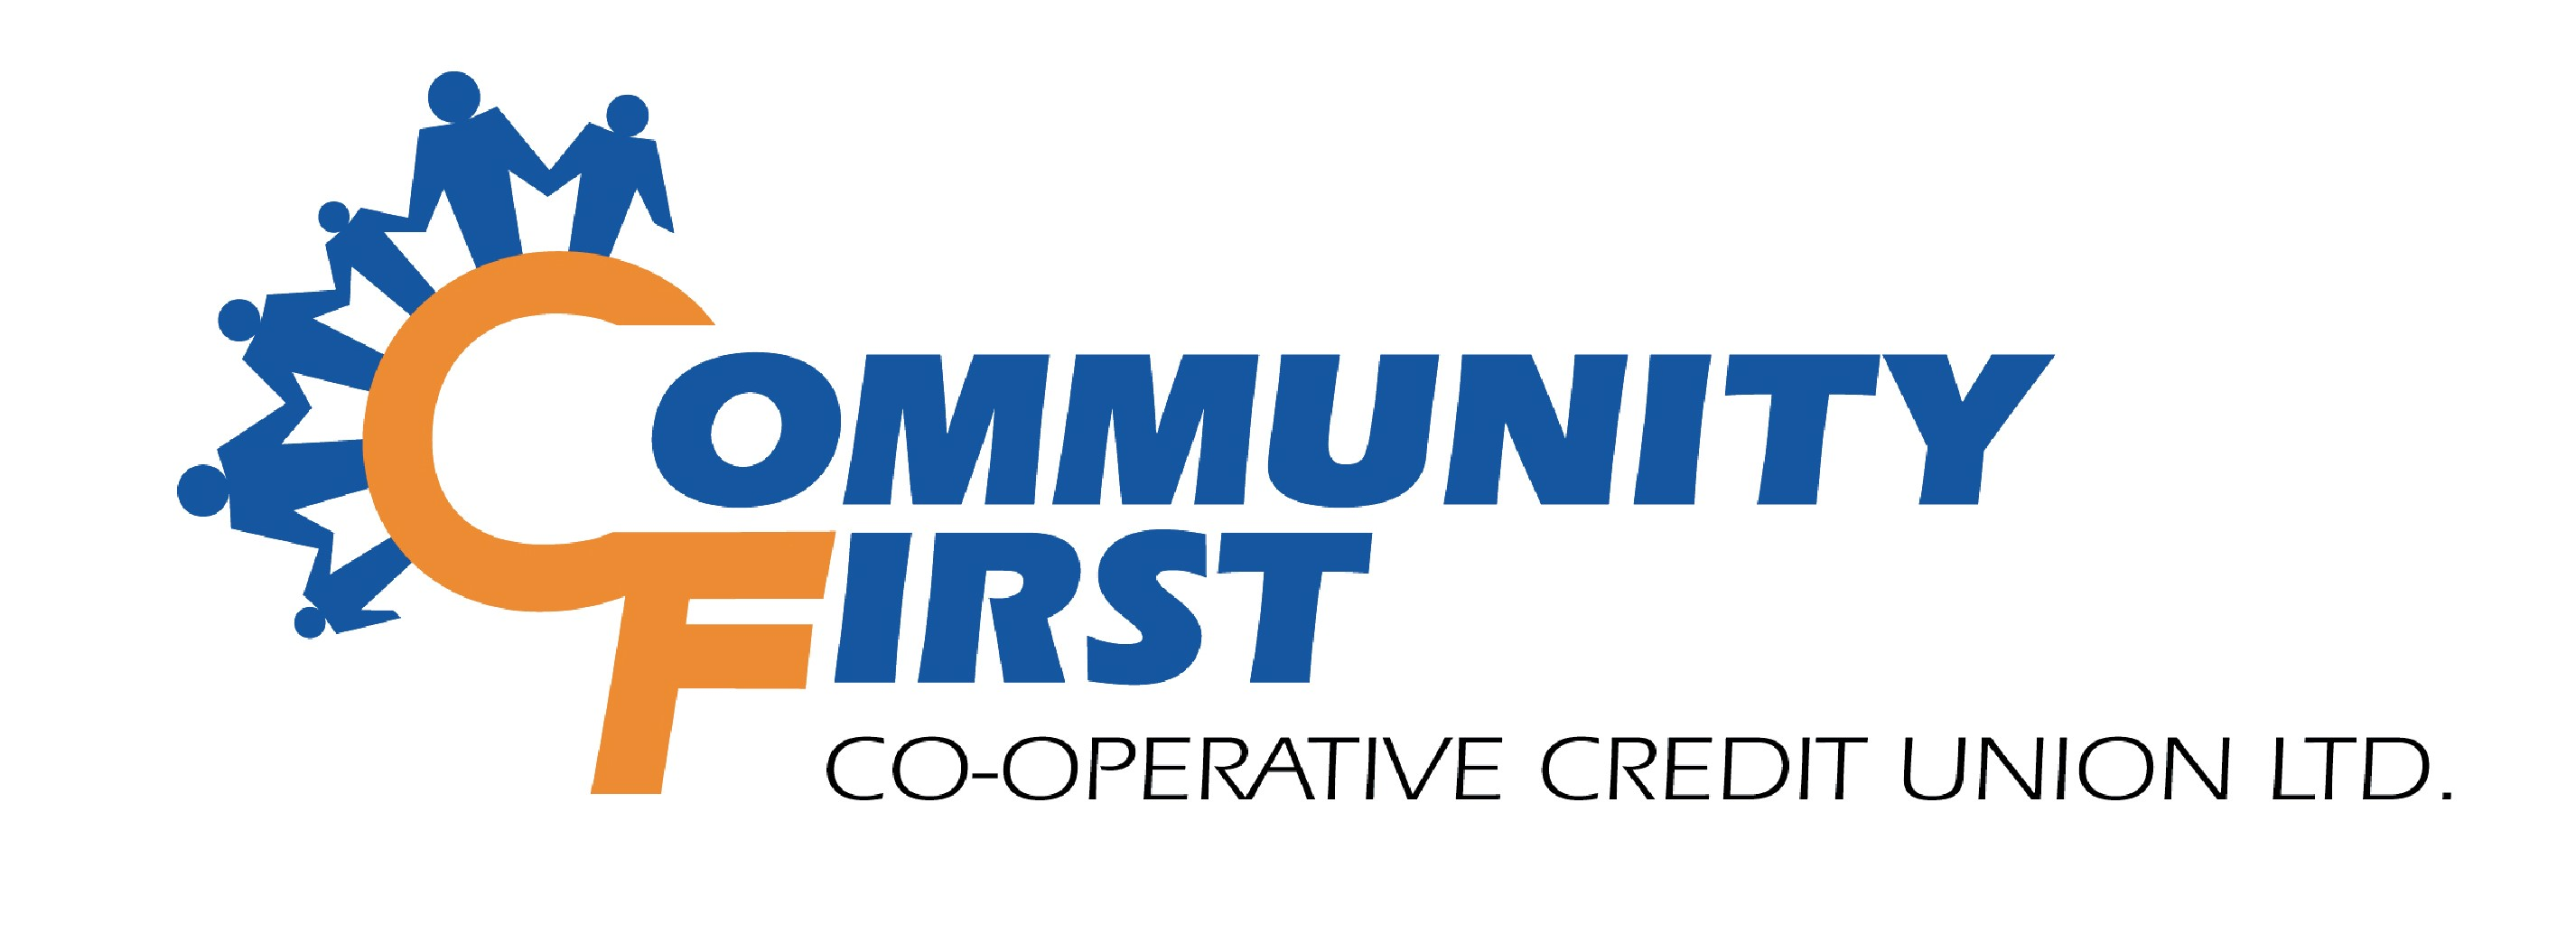 Community First Co-operative Credit Union Ltd